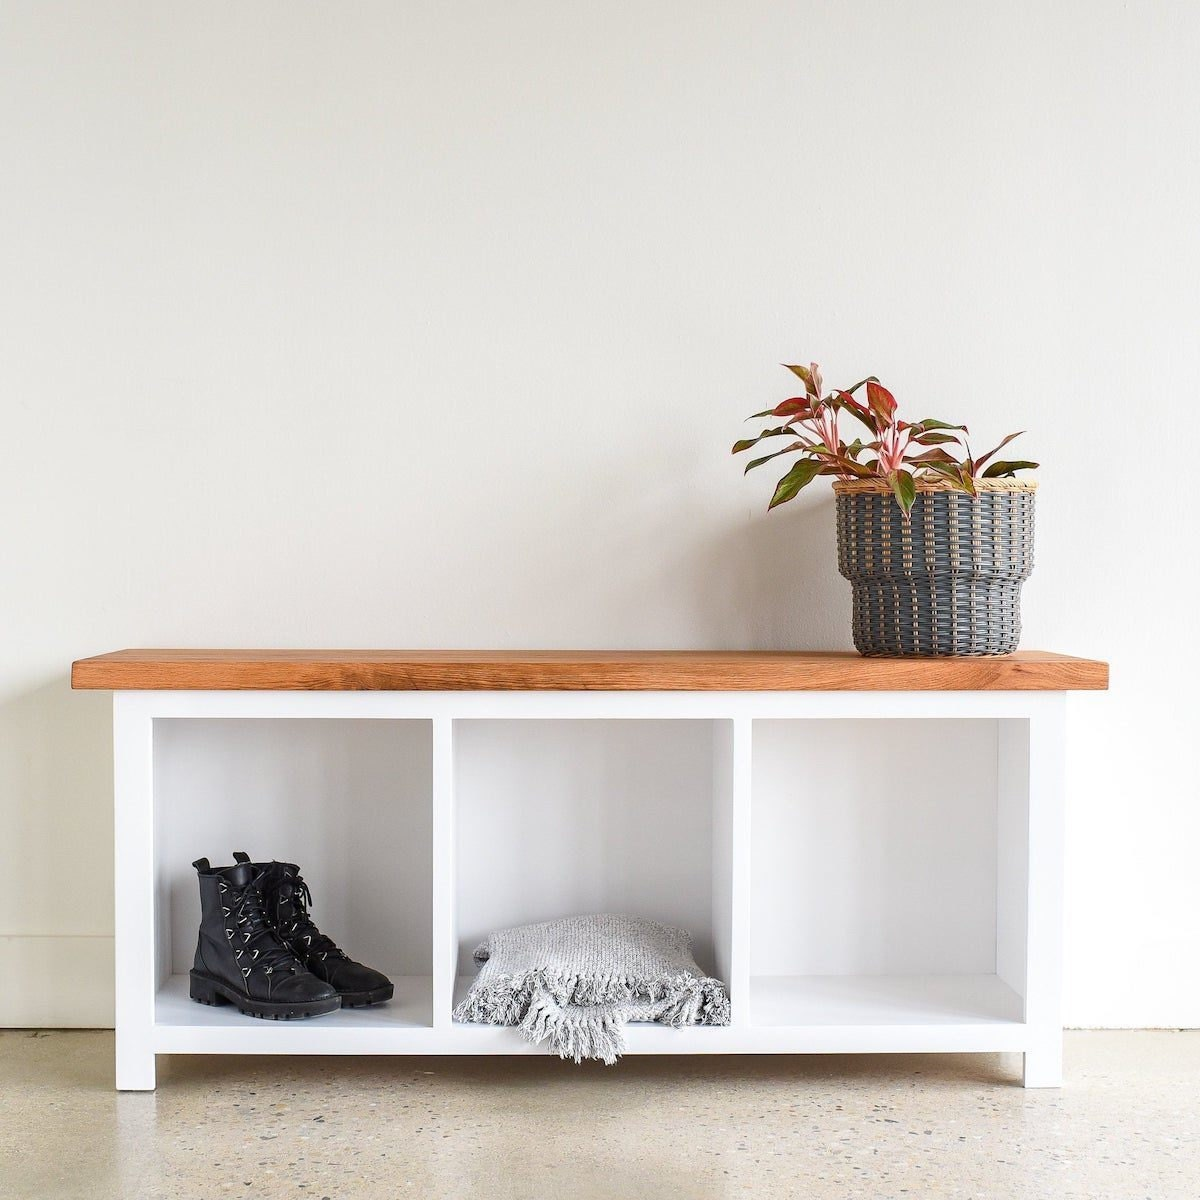 Entryway bench with storage cubbies from What WE Make